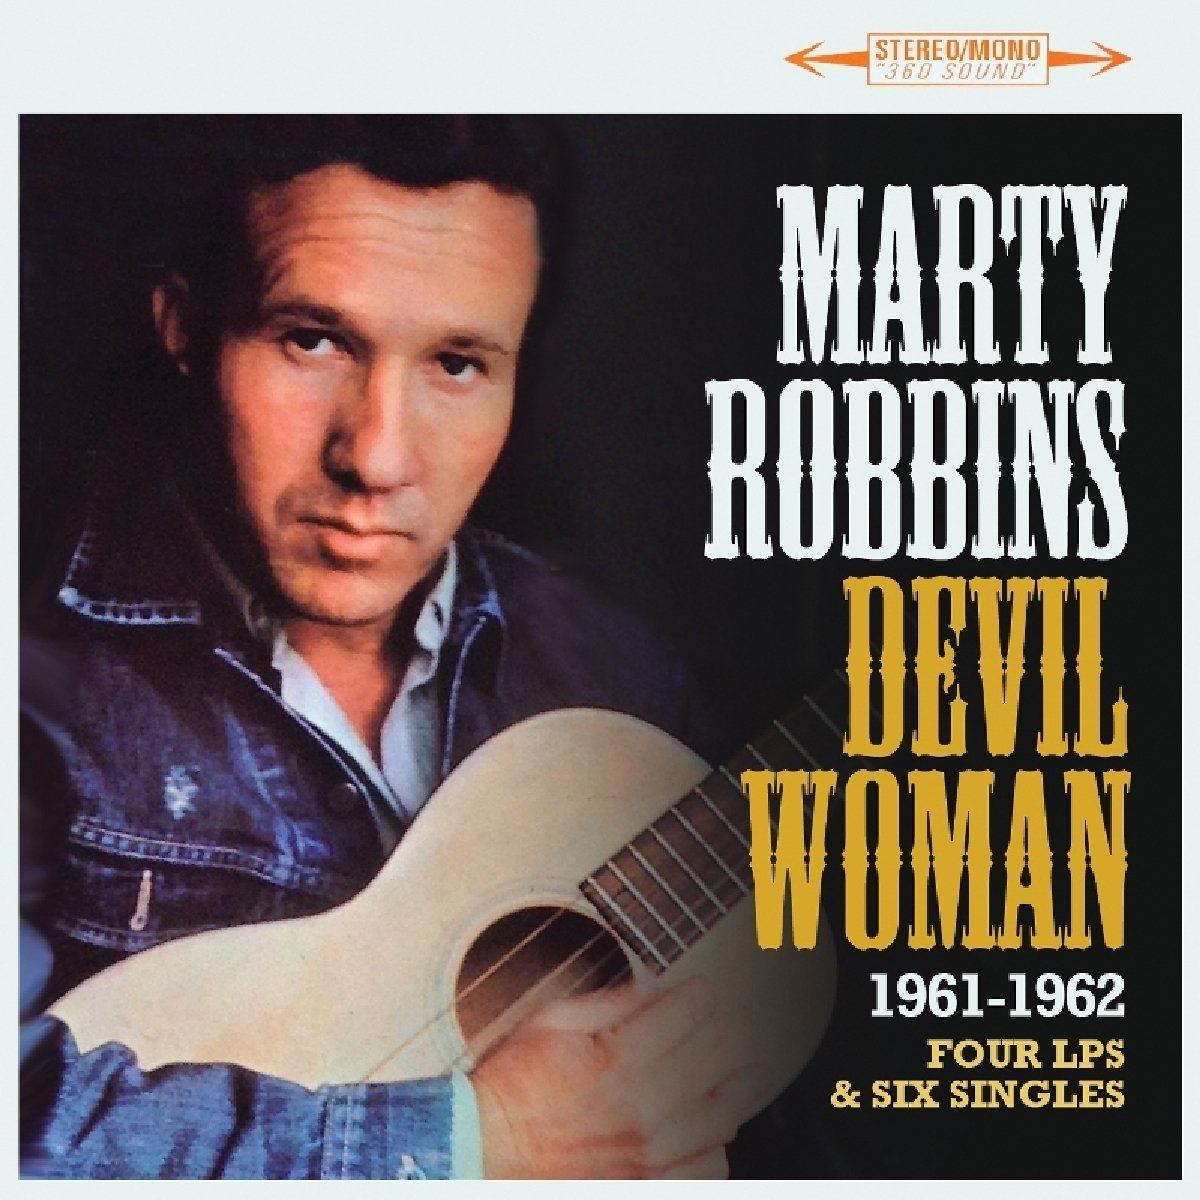 CD : Marty Robbins - Devil Woman: Four LPs & Six Singles 1961-1962 (United Kingdom - Import, 2 Disc)